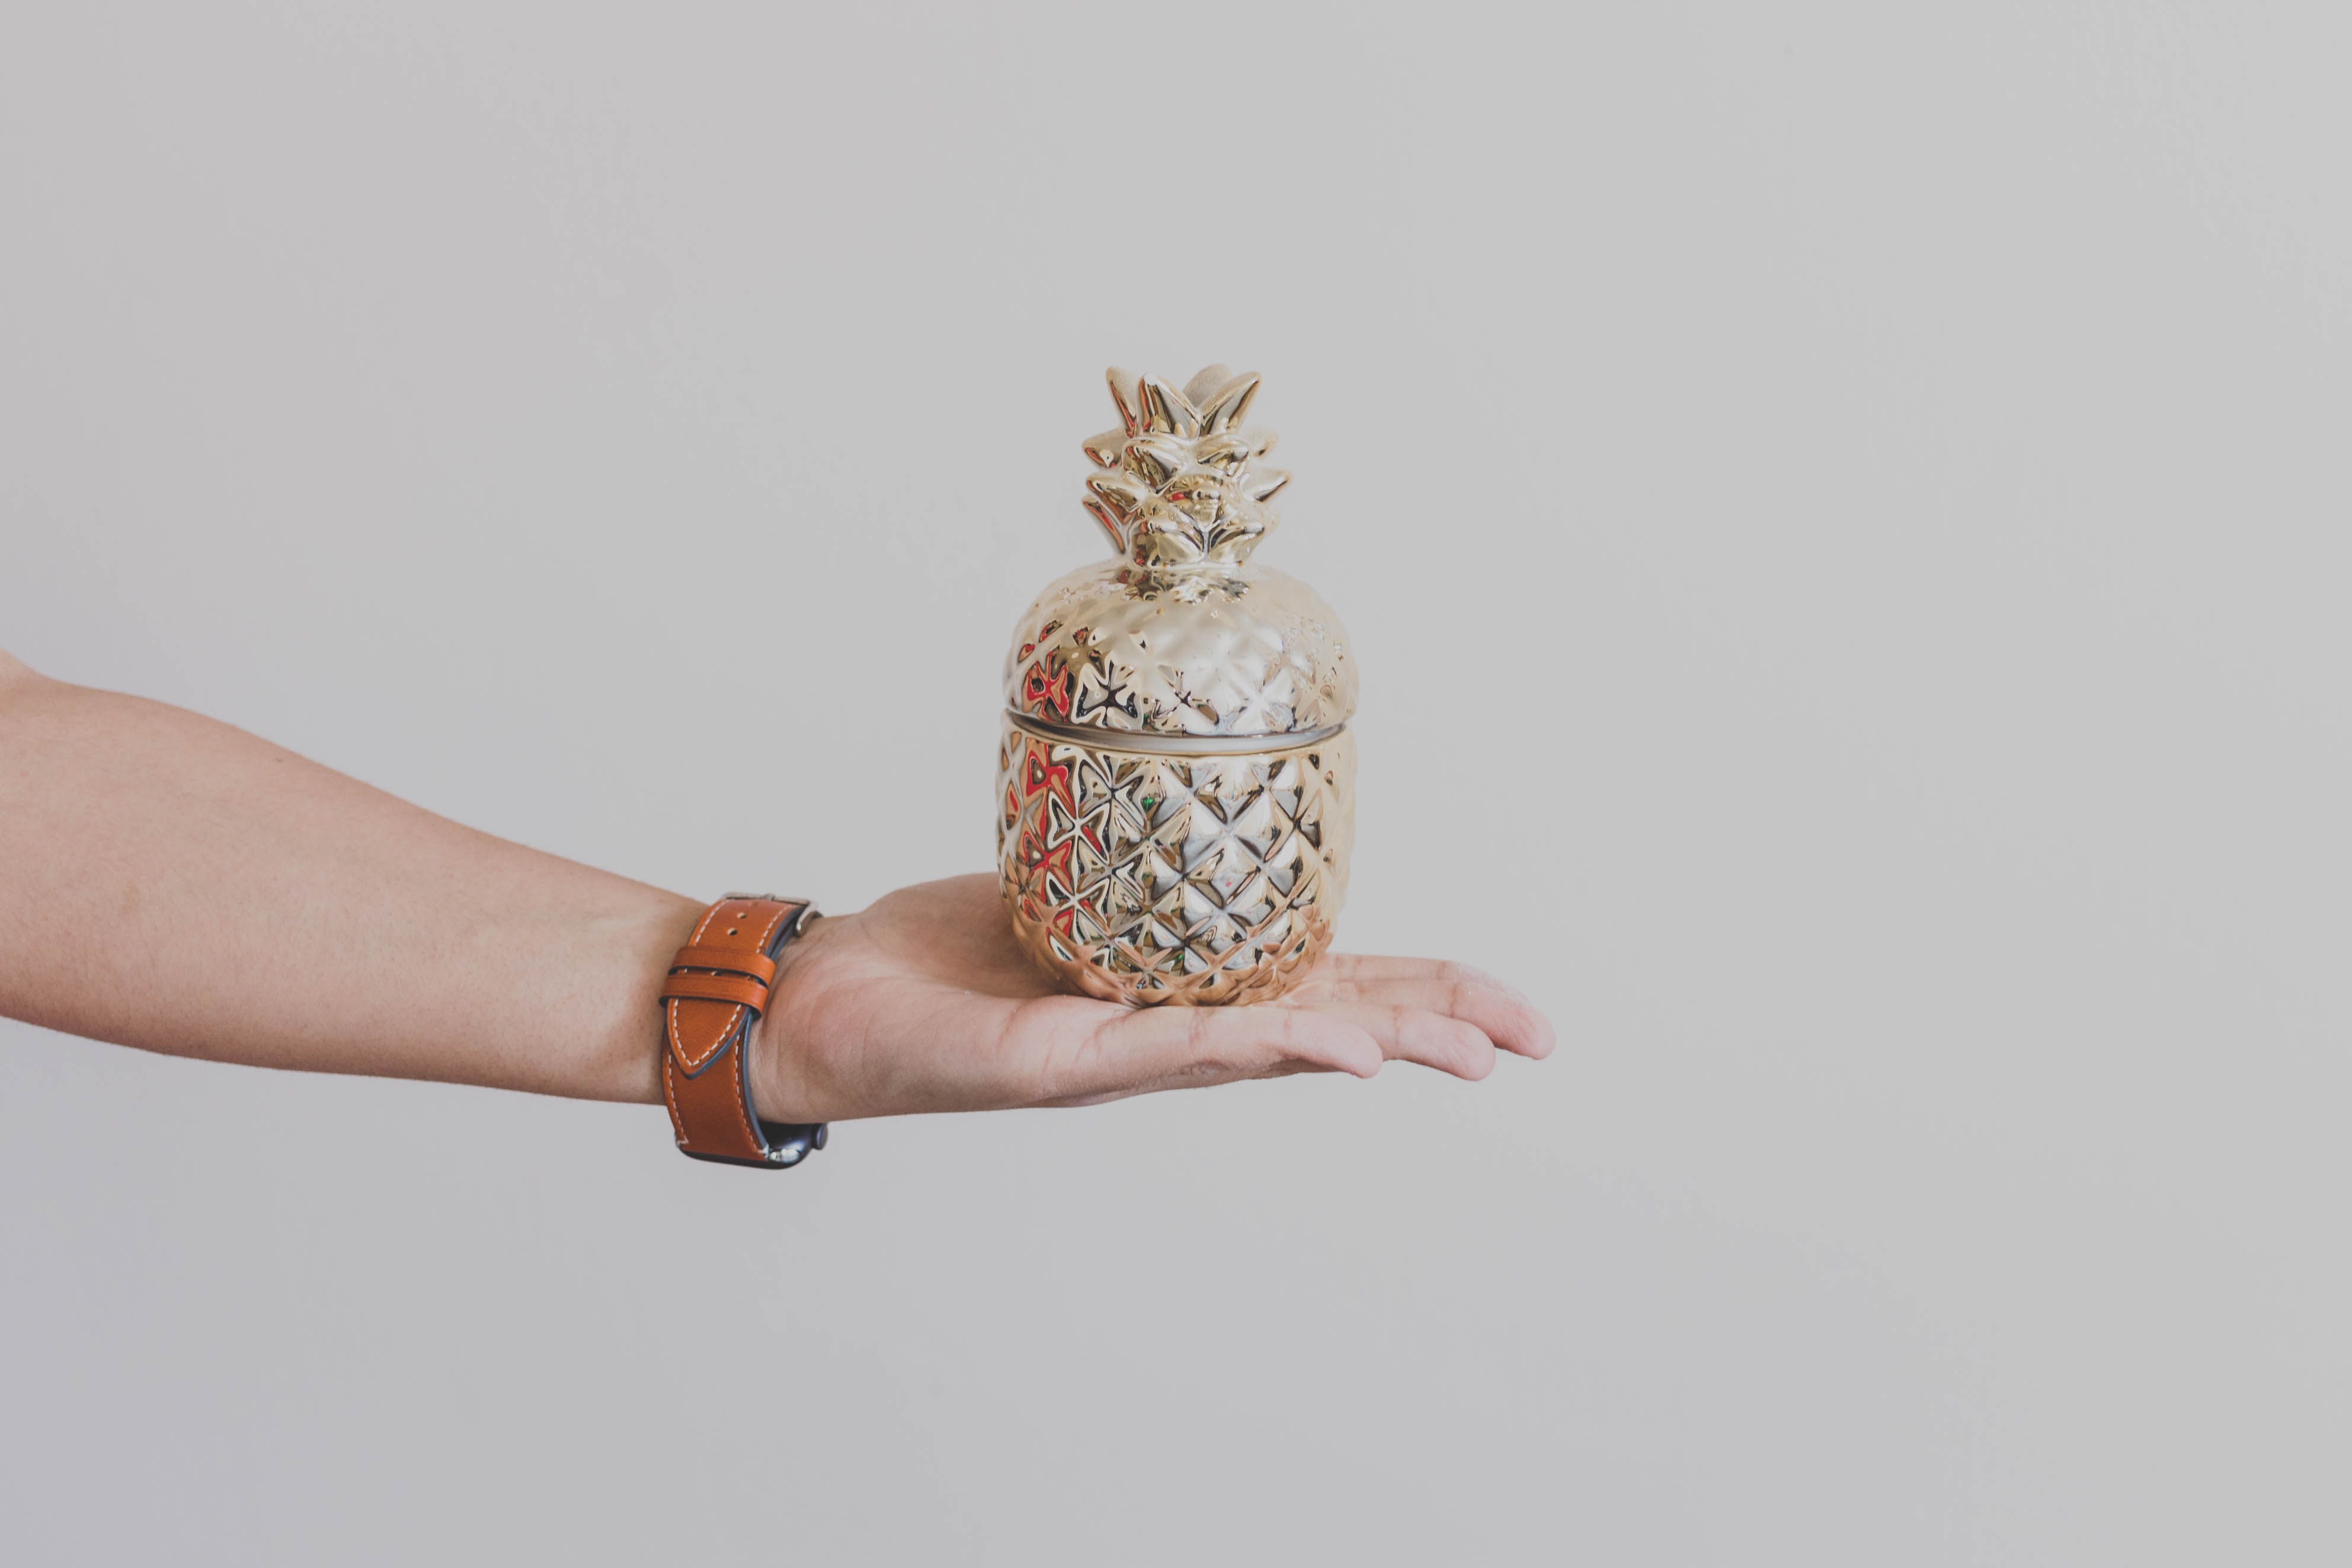 person holding gold-colored pineapple design rack